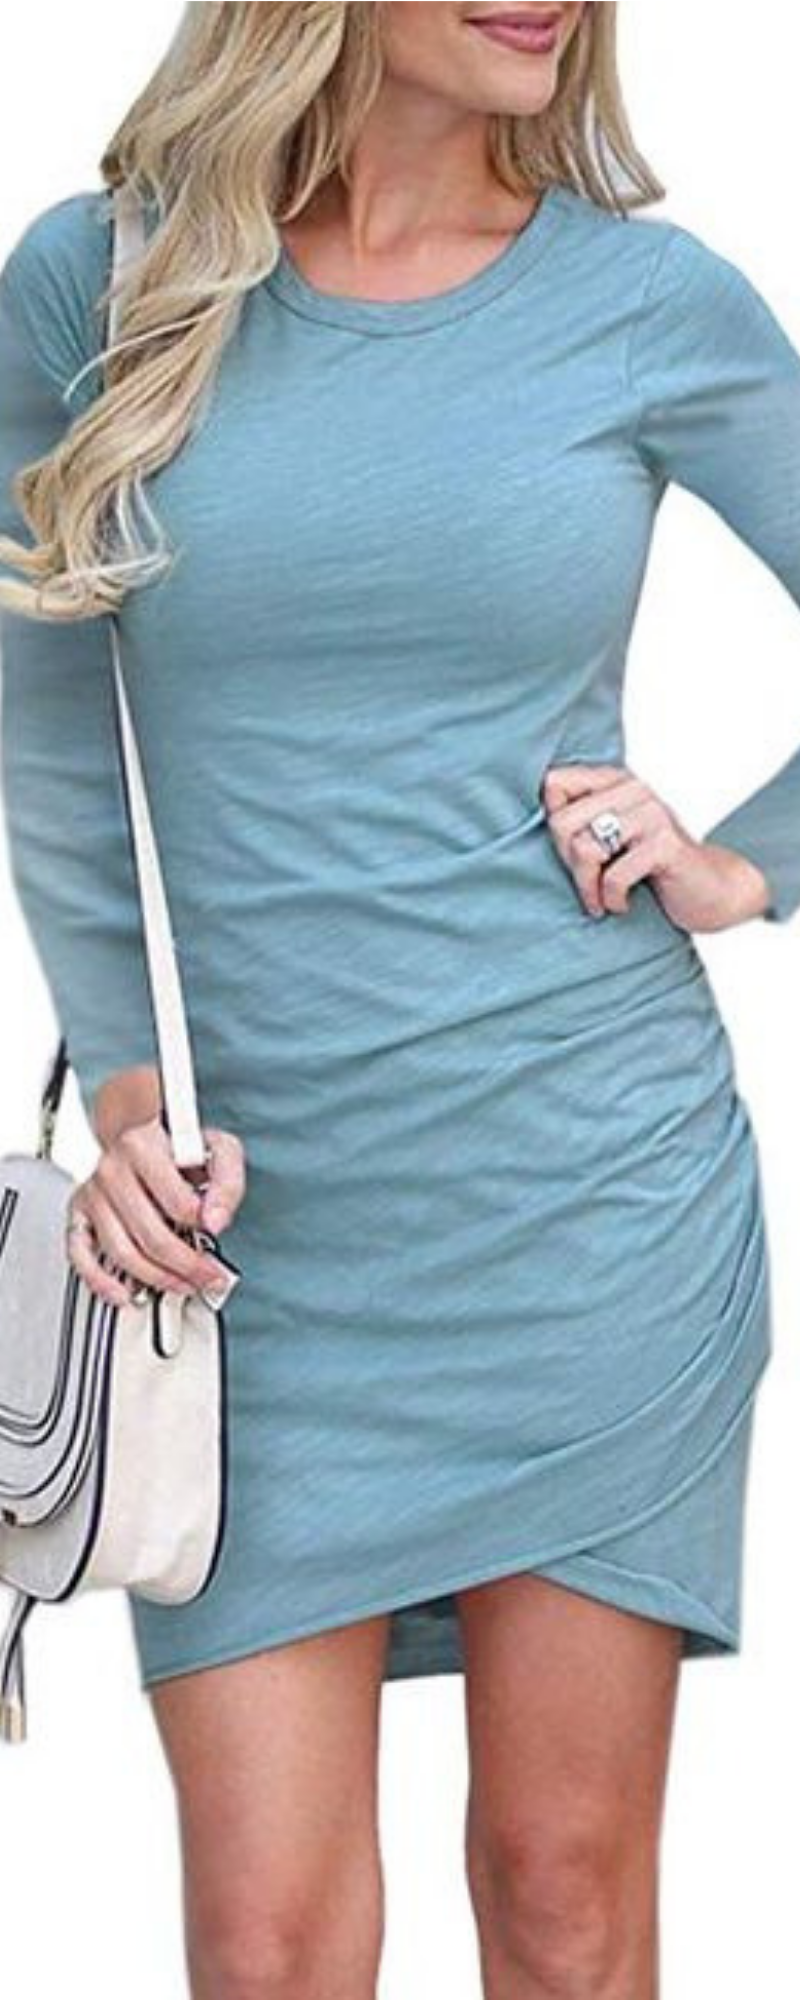 Women S Long Sleeve Tulip Bodycon Dress Ruched Short Mini Dresses Short Sleeve Mini Dress Short Mini Dress Bodycon Dress Casual [ 2000 x 800 Pixel ]